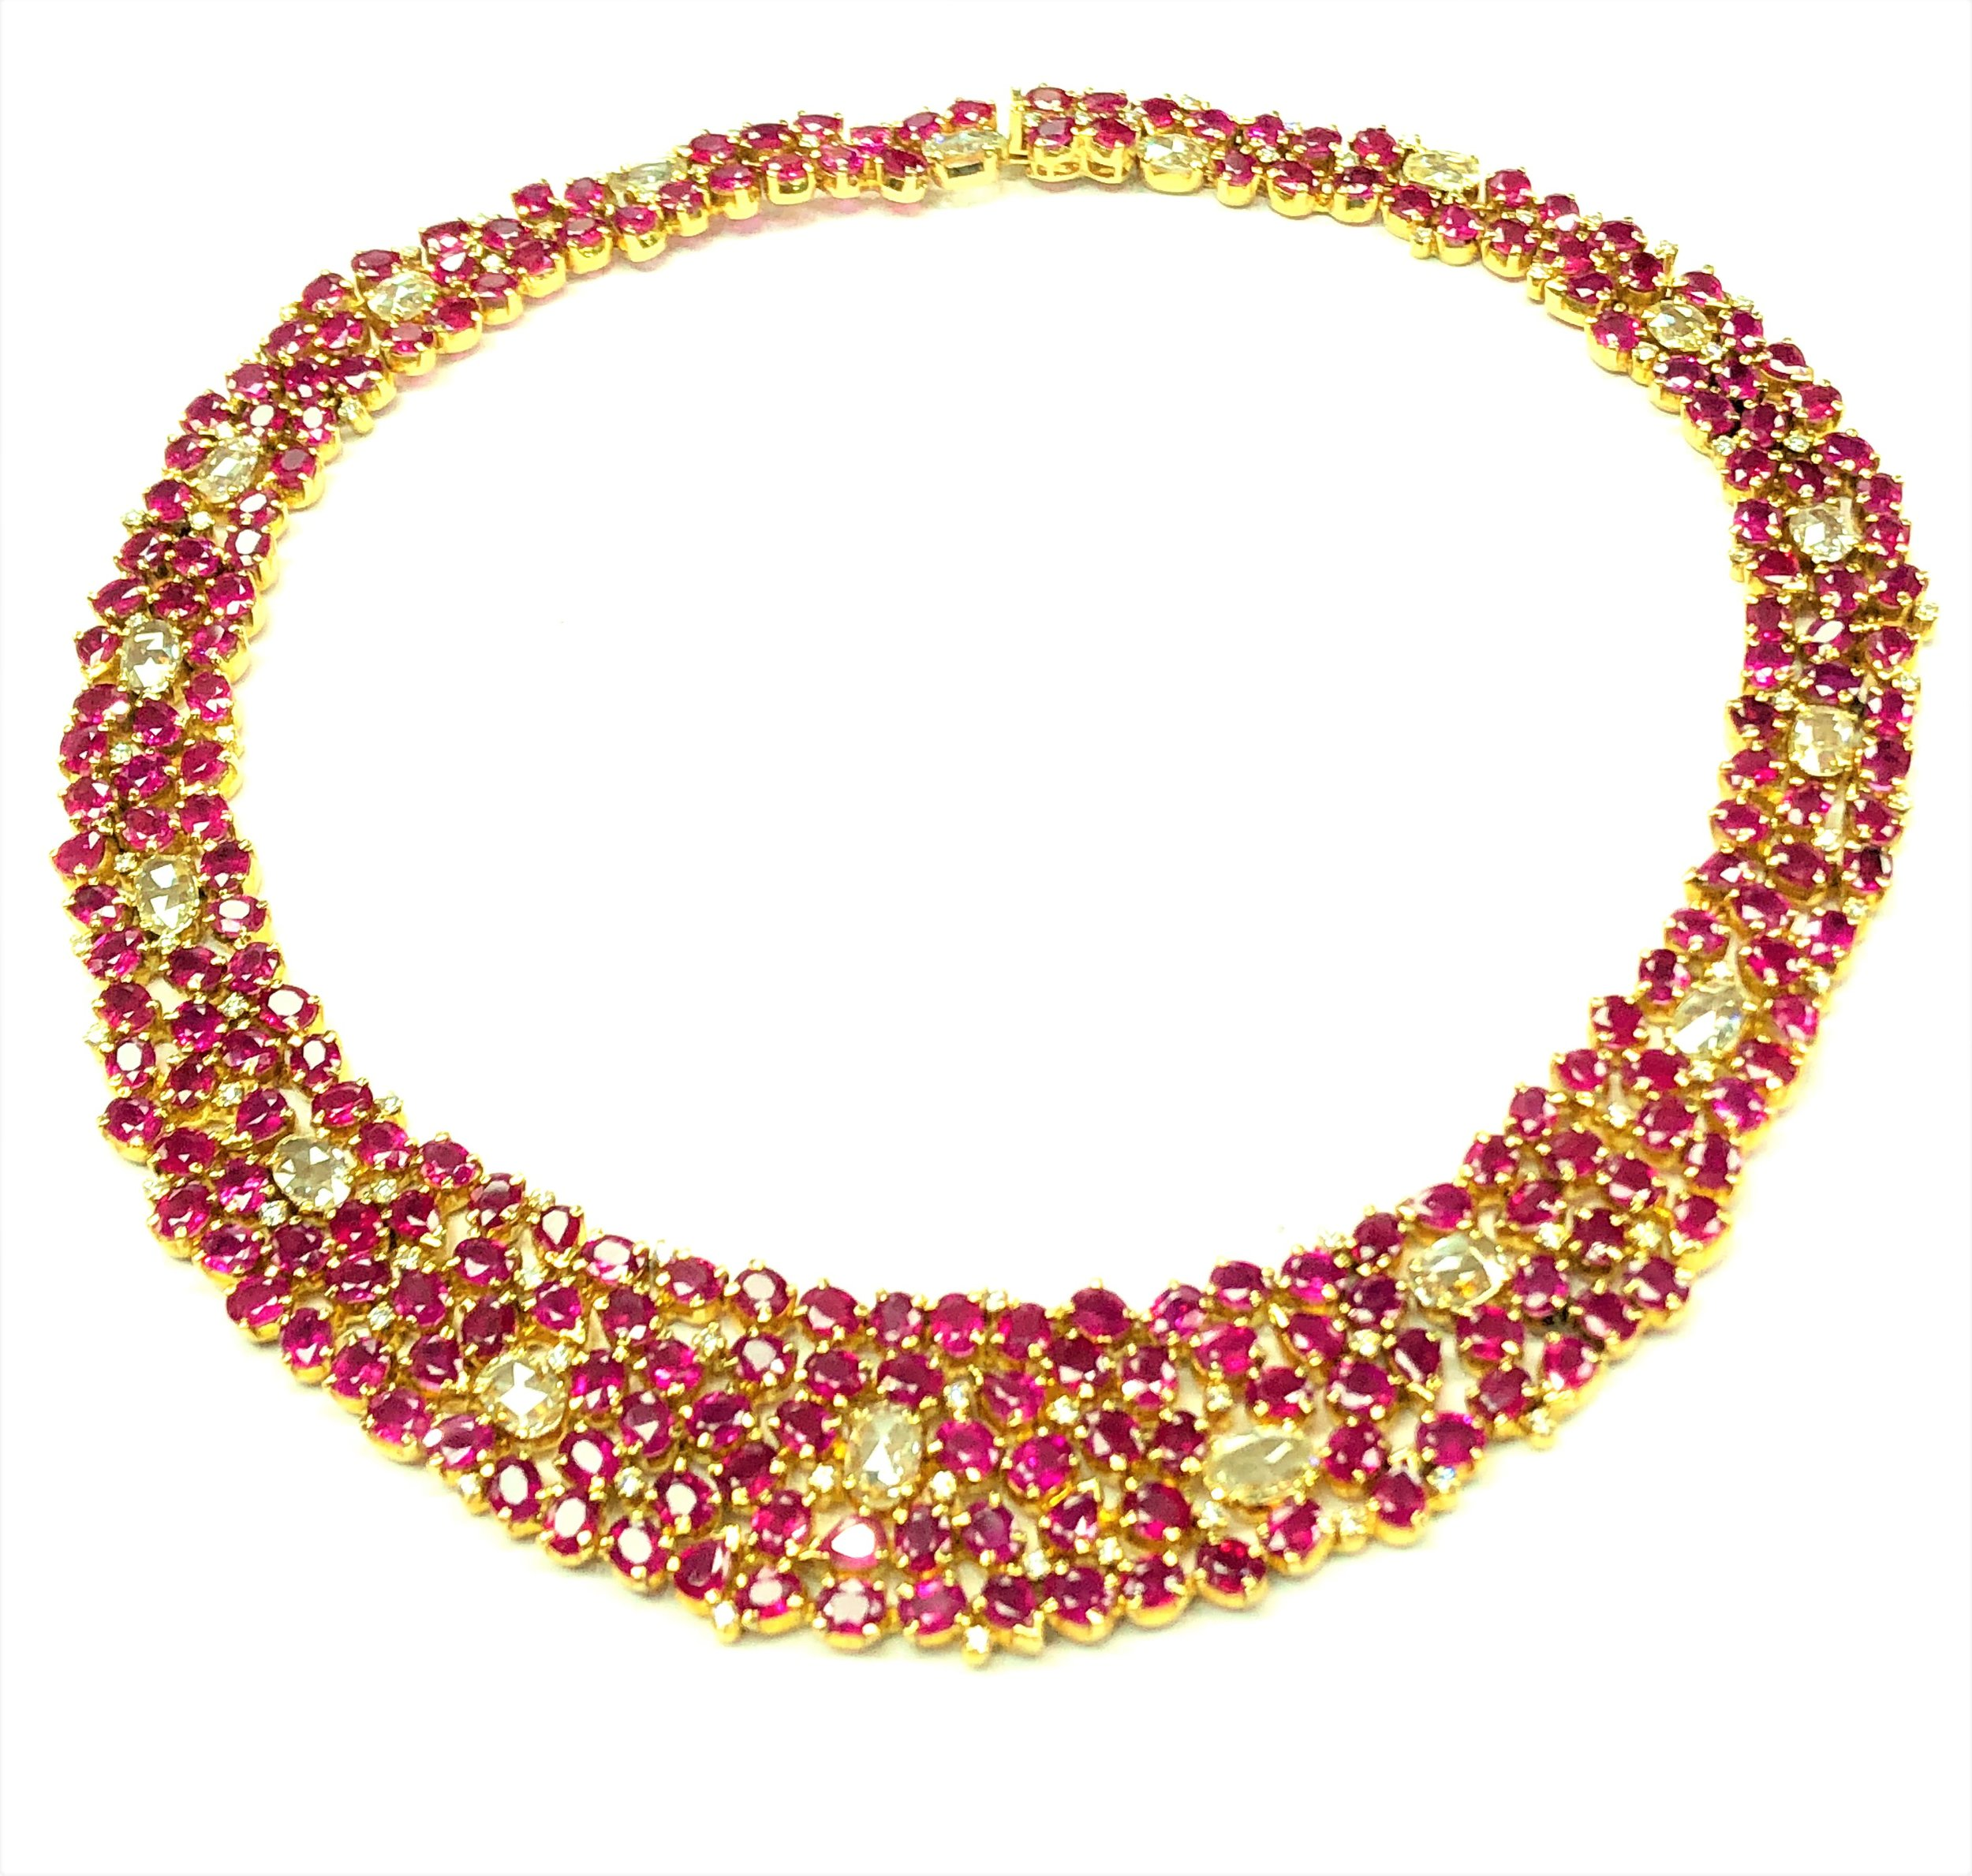 Important Burmese Ruby Necklace with Old Mine Cut Diamonds, 18kt Yellow Gold  Est. US$ 22,000-28,000  including matching earrings